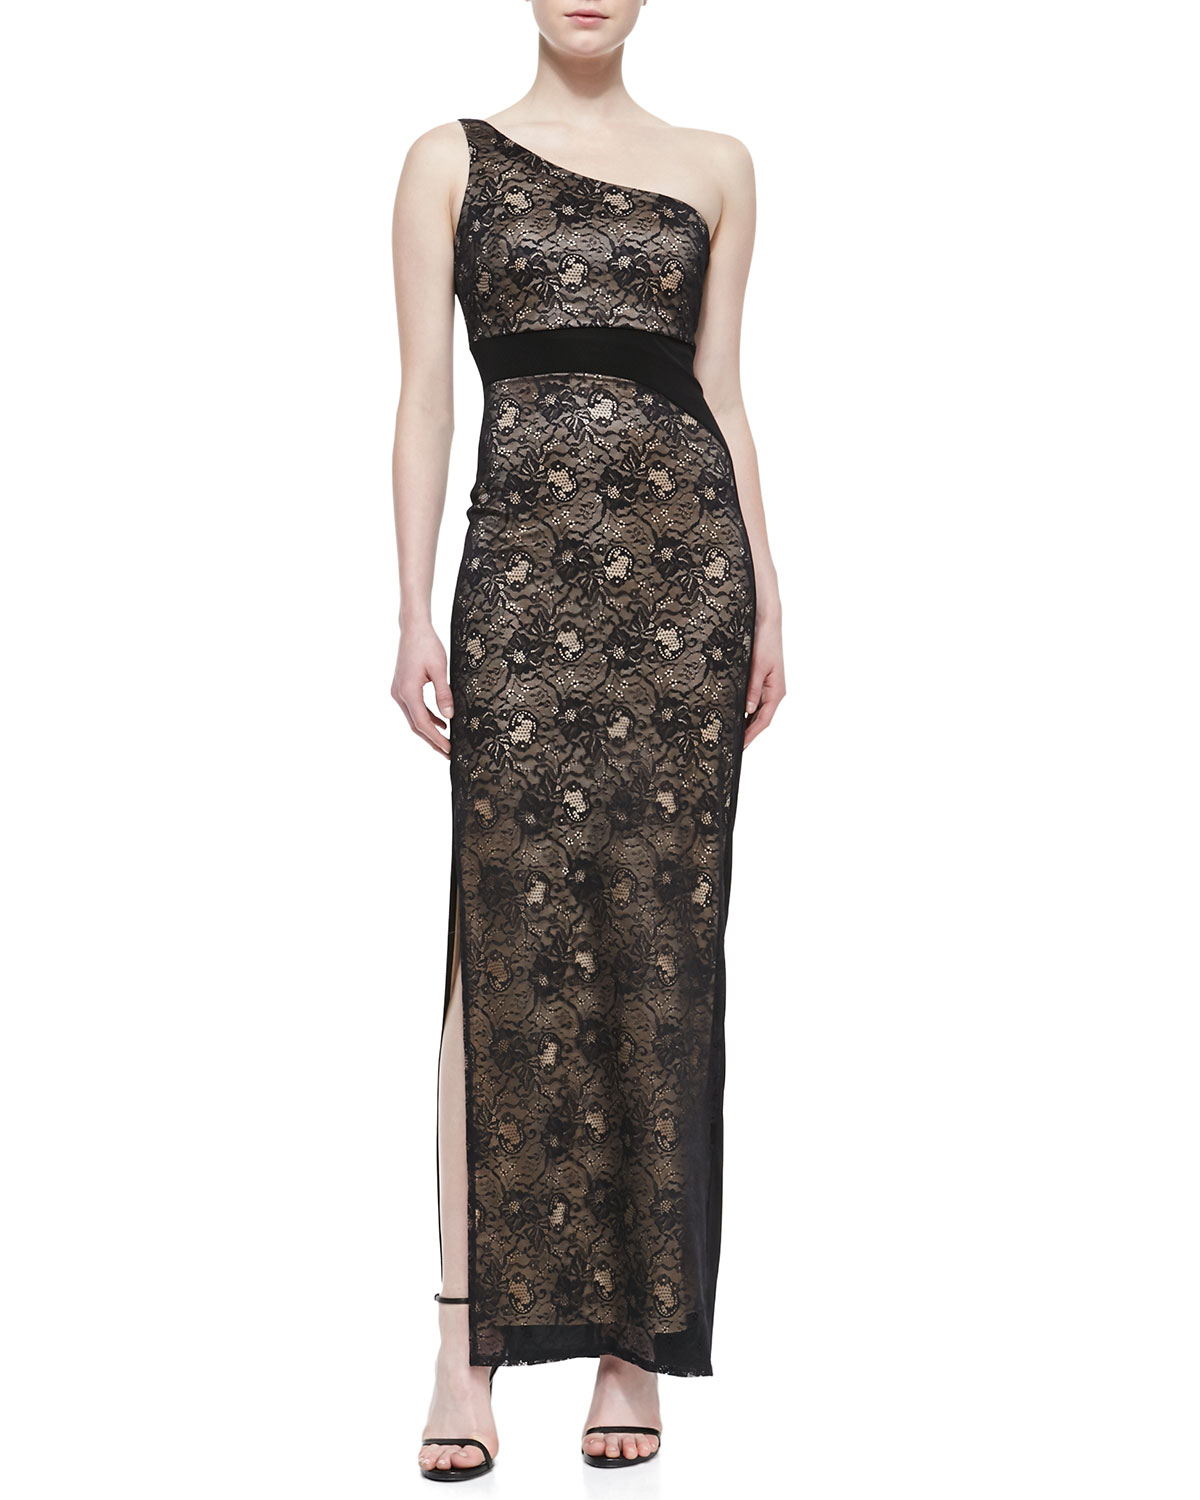 Womens One Shoulder Stretch Lace Gown, Black   Laundry by Shelli Segal   Black